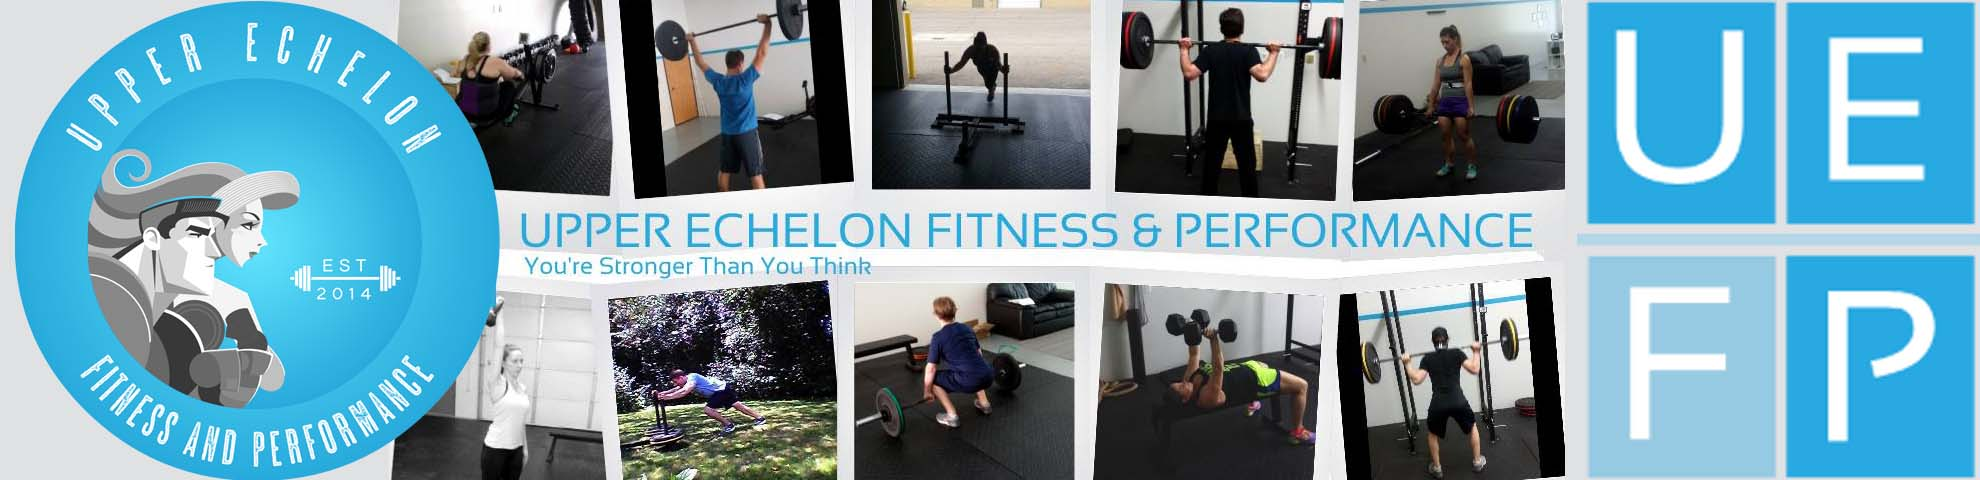 Personal Training Studio Near Me, Novi, Wixom Michigan